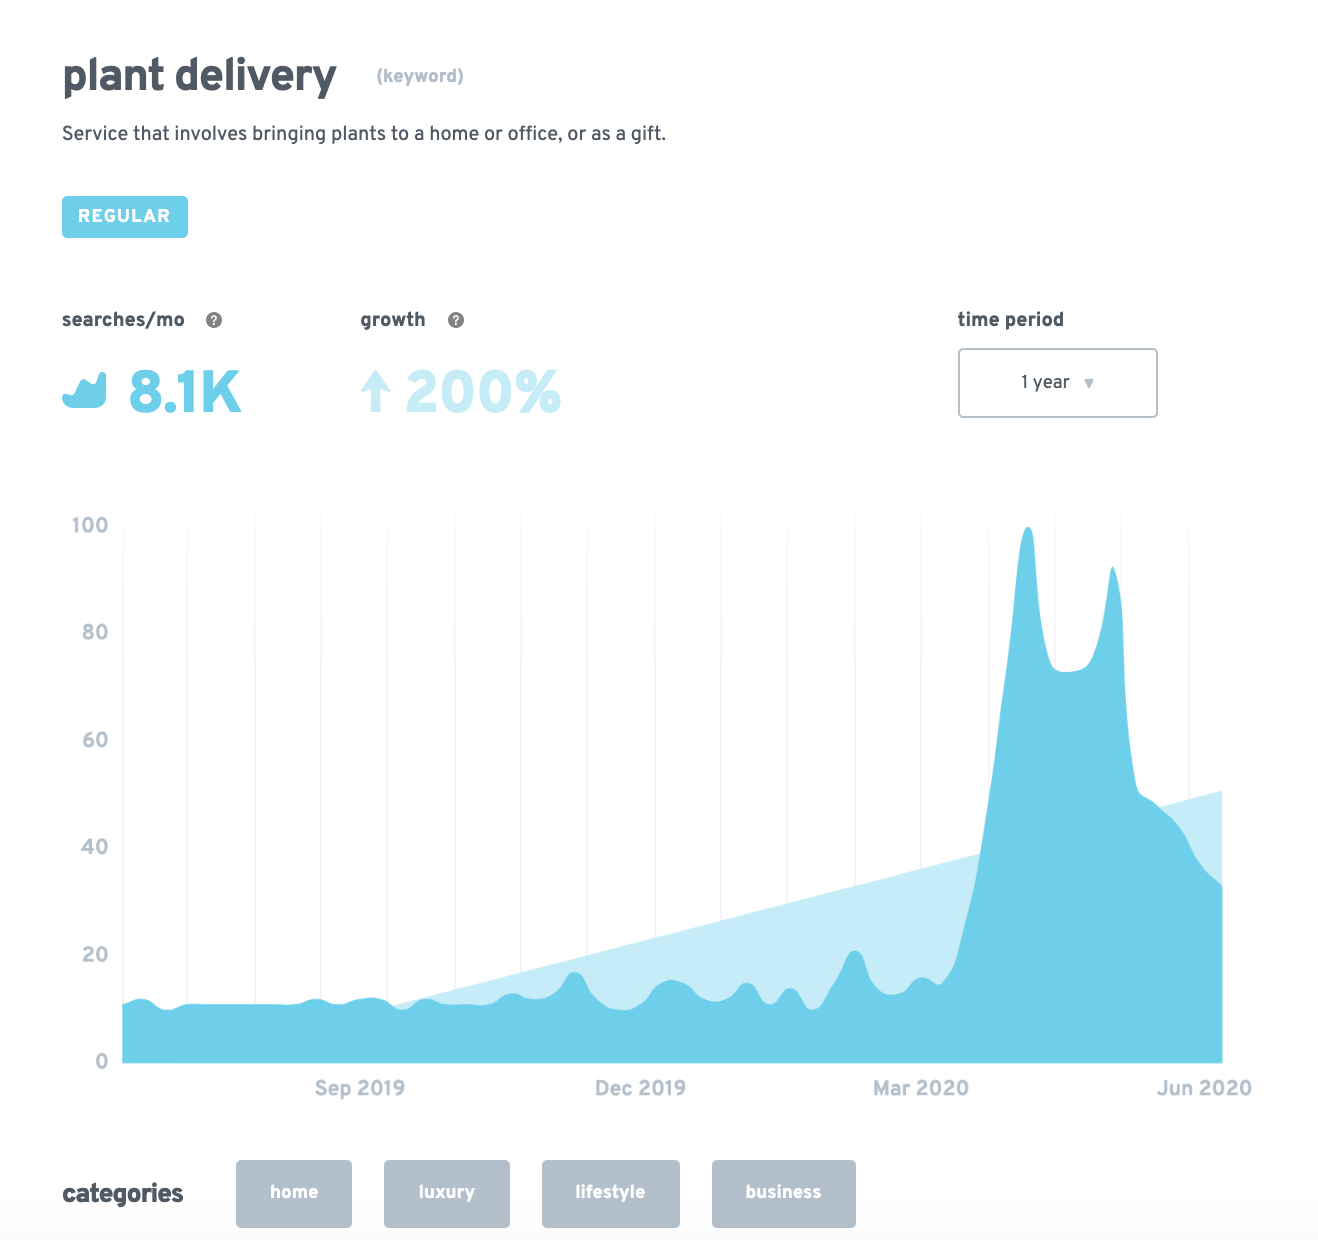 Growth in interest for plant delivery.